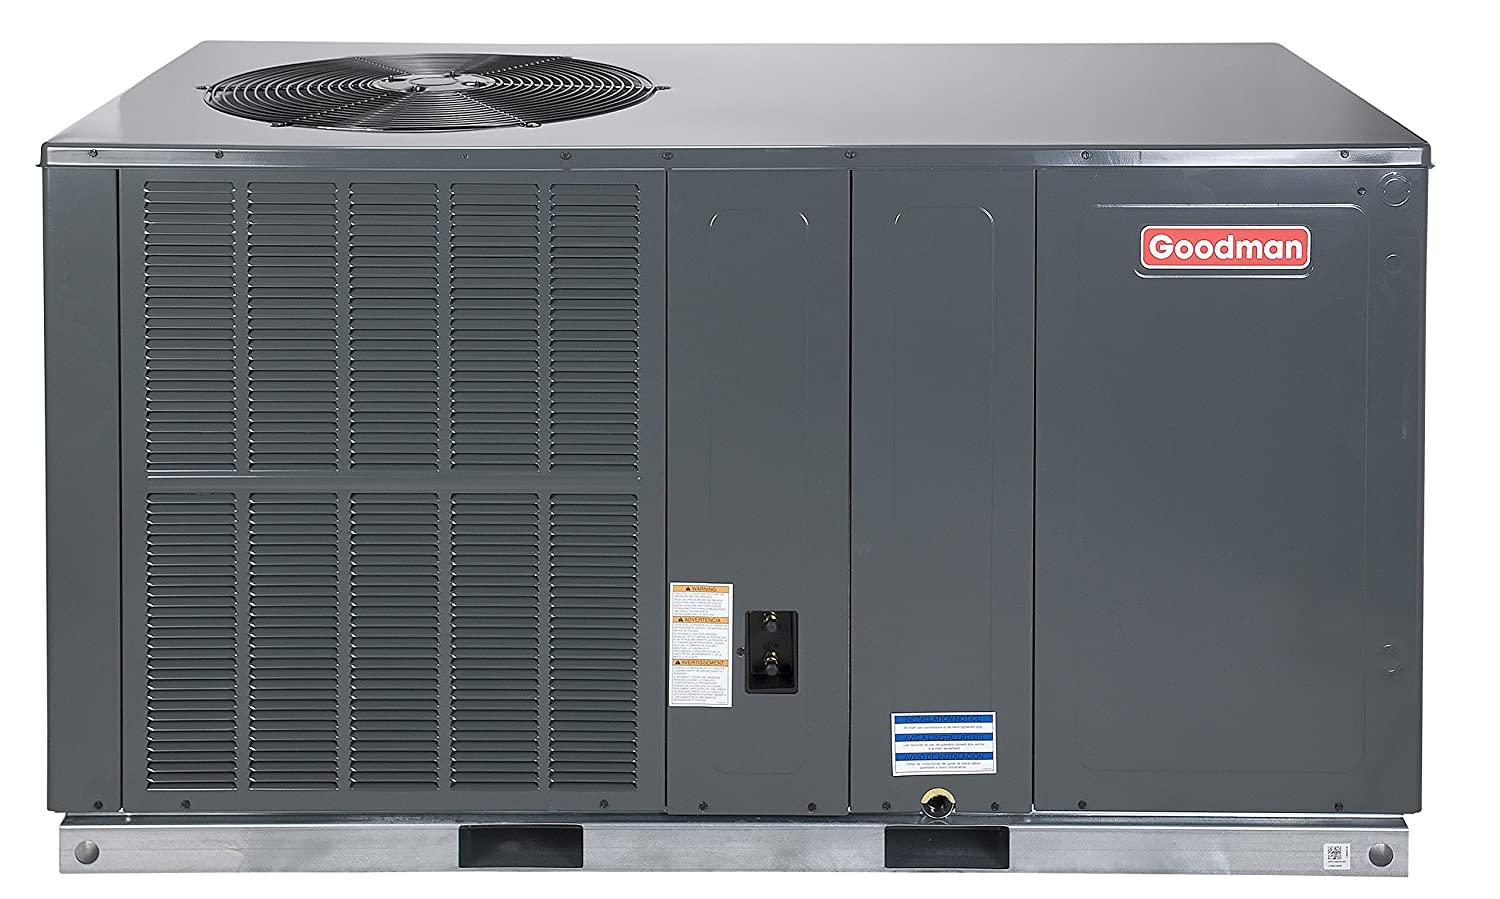 5 Ton 14 Seer Goodman Package Air Conditioner – GPC1460H41